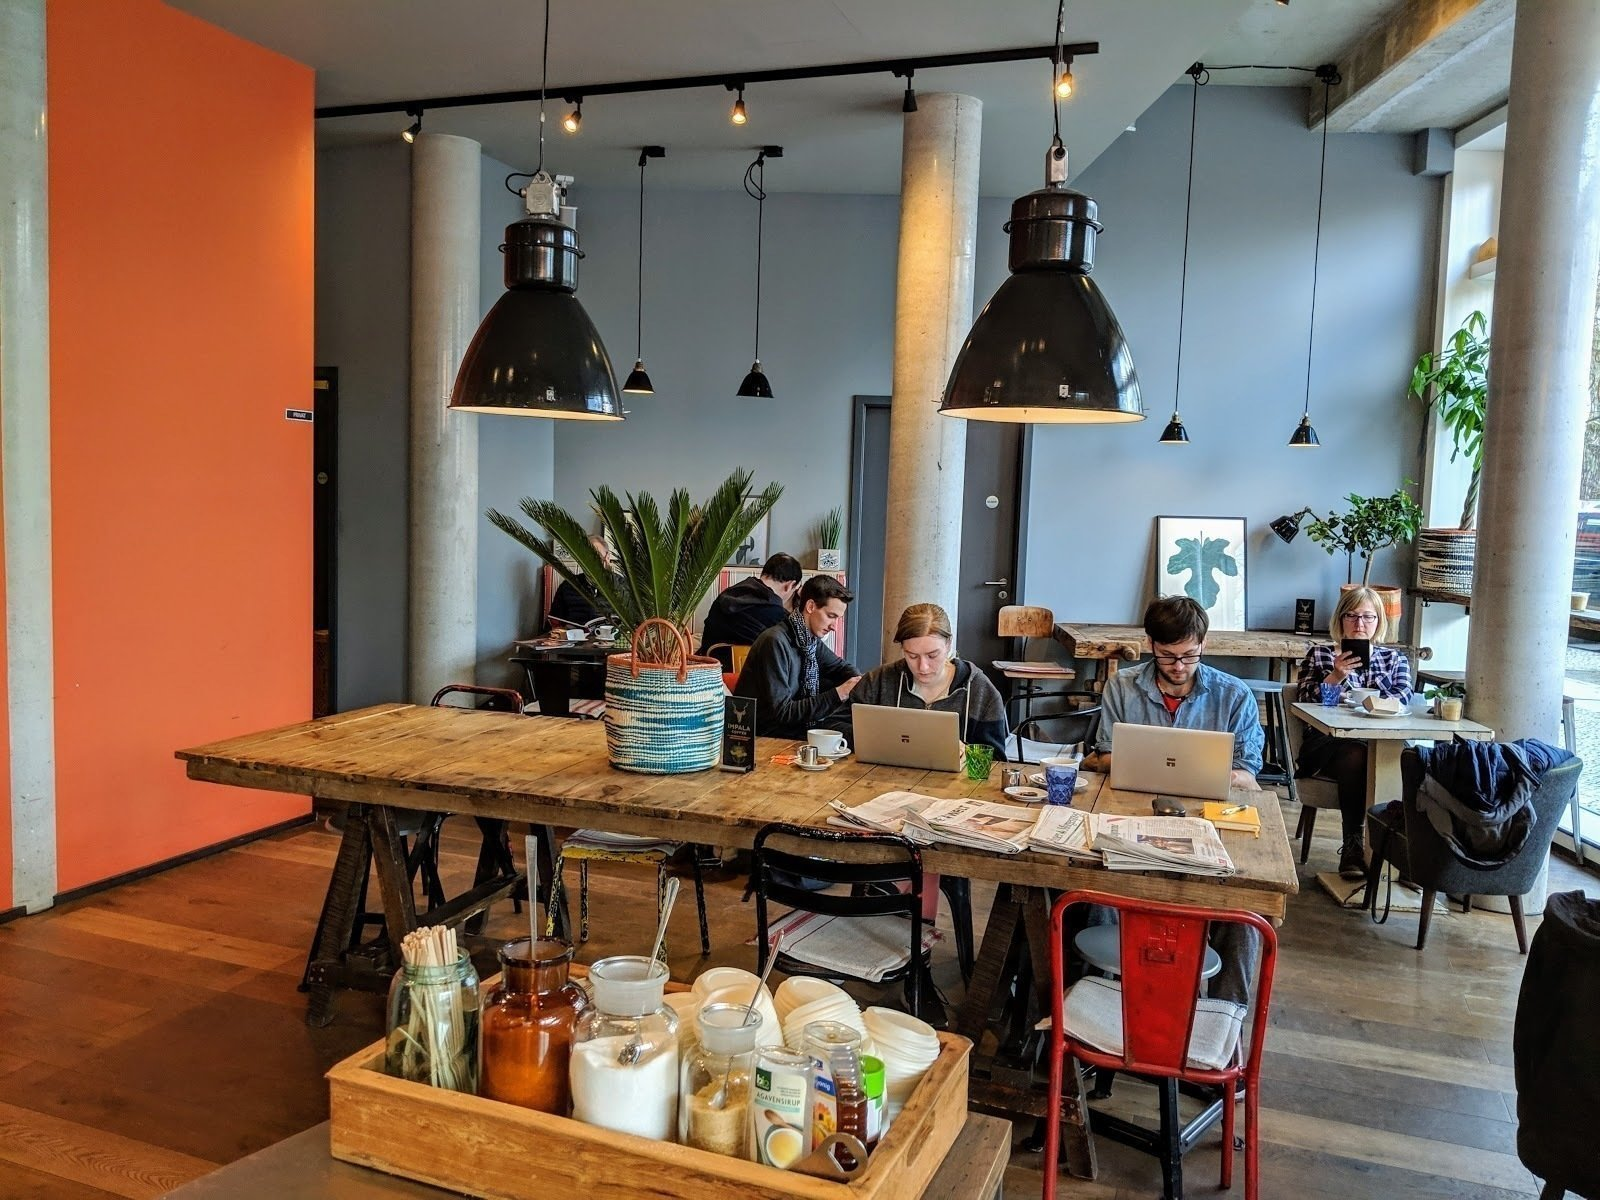 Impala Coffee: A Work-Friendly Place in Berlin